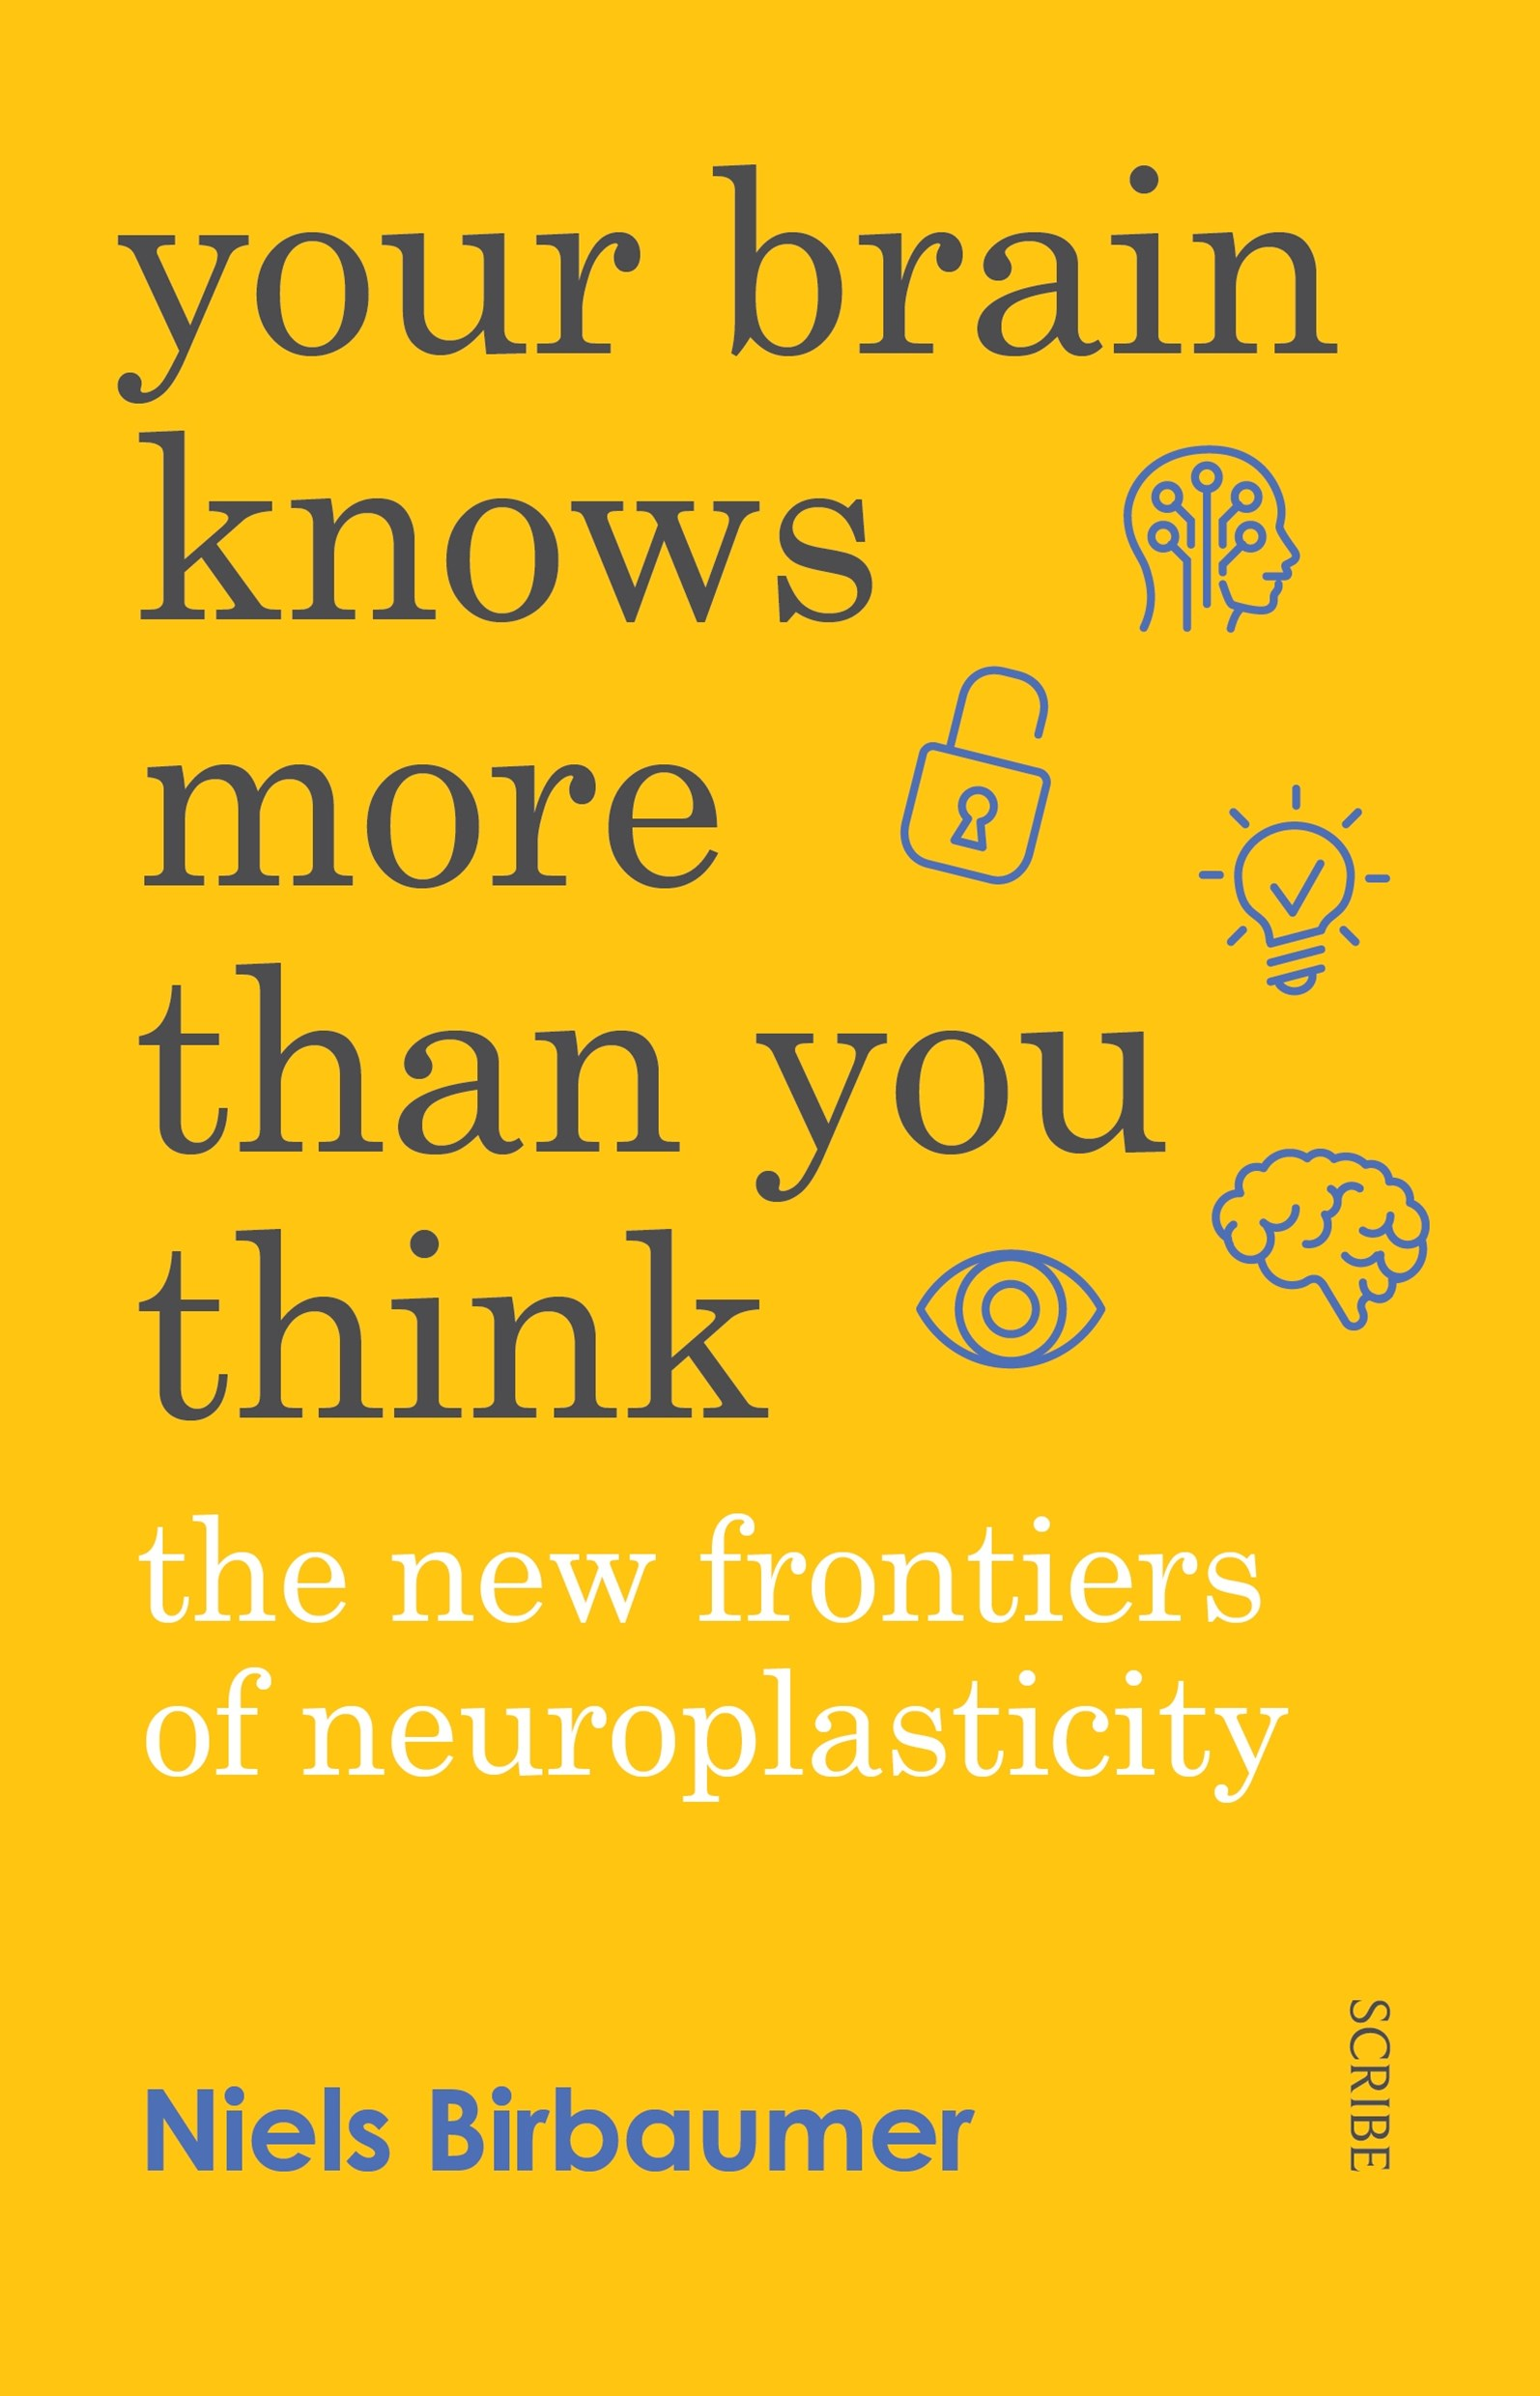 Your Brain Knows More Than You Think: The New Frontiers of Neuroplasticity